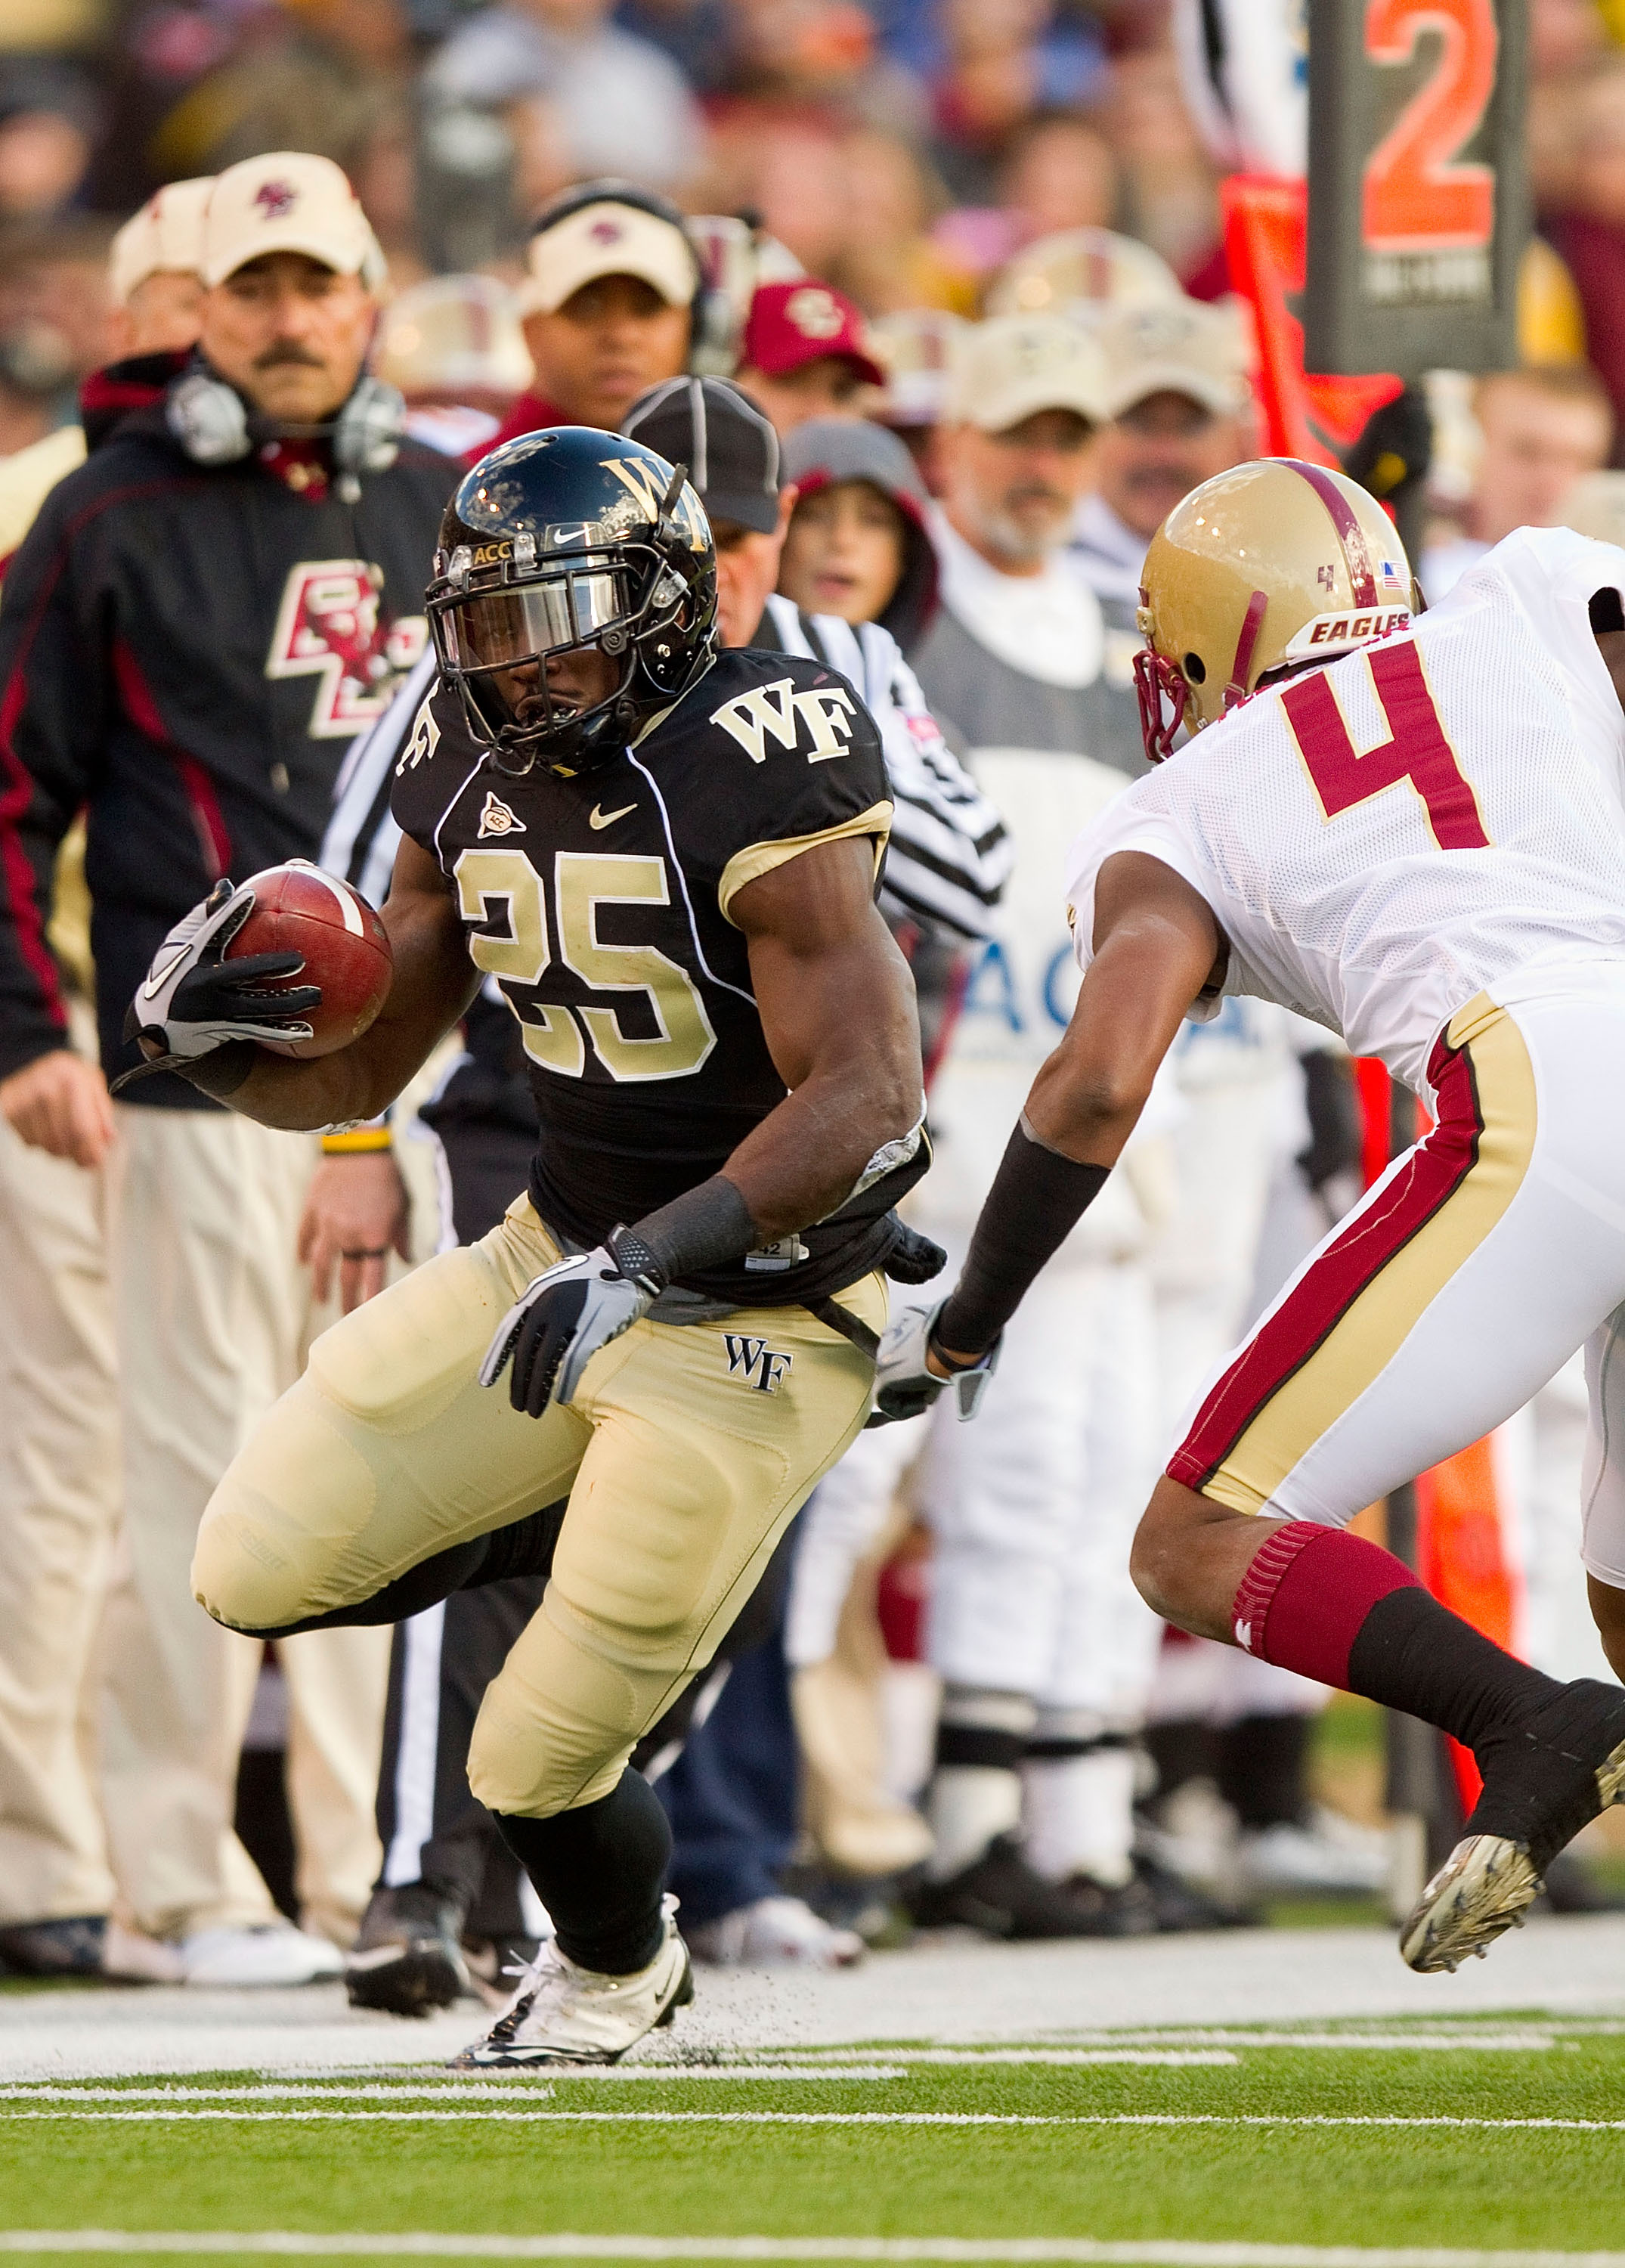 Josh Harris rushed for 138 yards and a touchdown in Wafe Forest's win over Vanderbilt. (File photo)